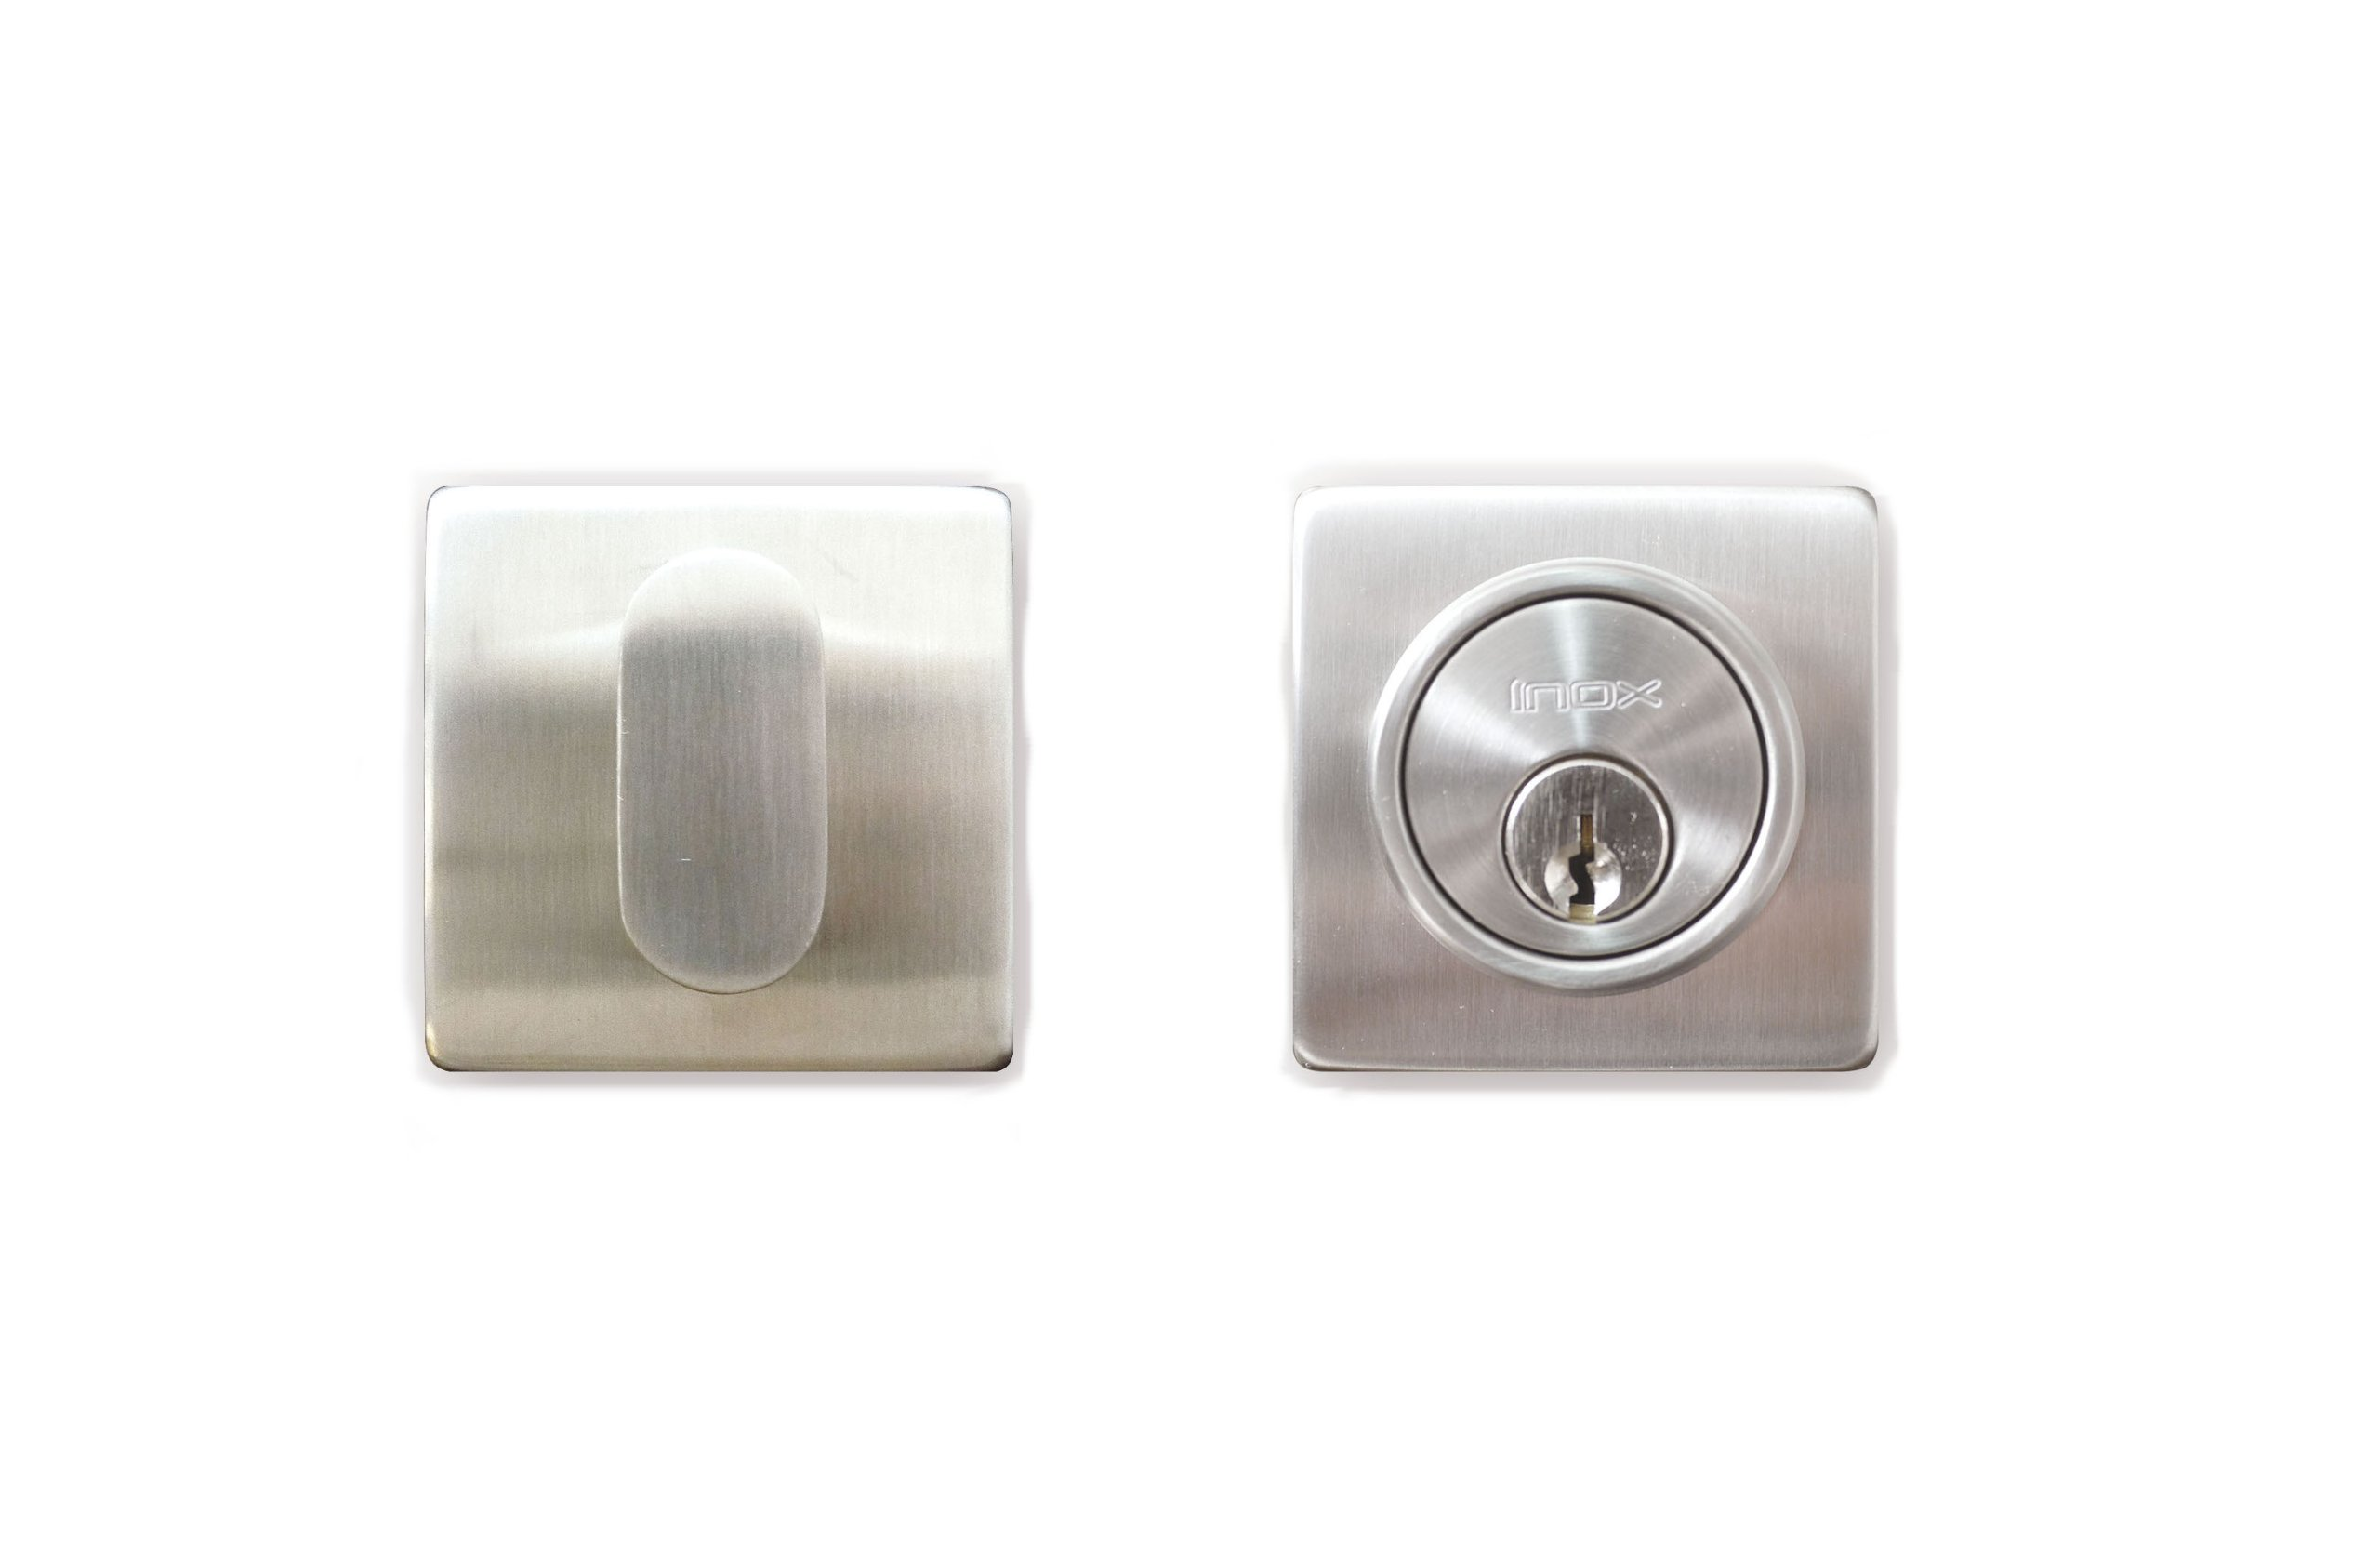 INOX LD310B6-32D Square Single-Cylinder Deadbolt with 2-3/8'' Diameter and 2-3/8'' Basket, Satin Stainless Steel